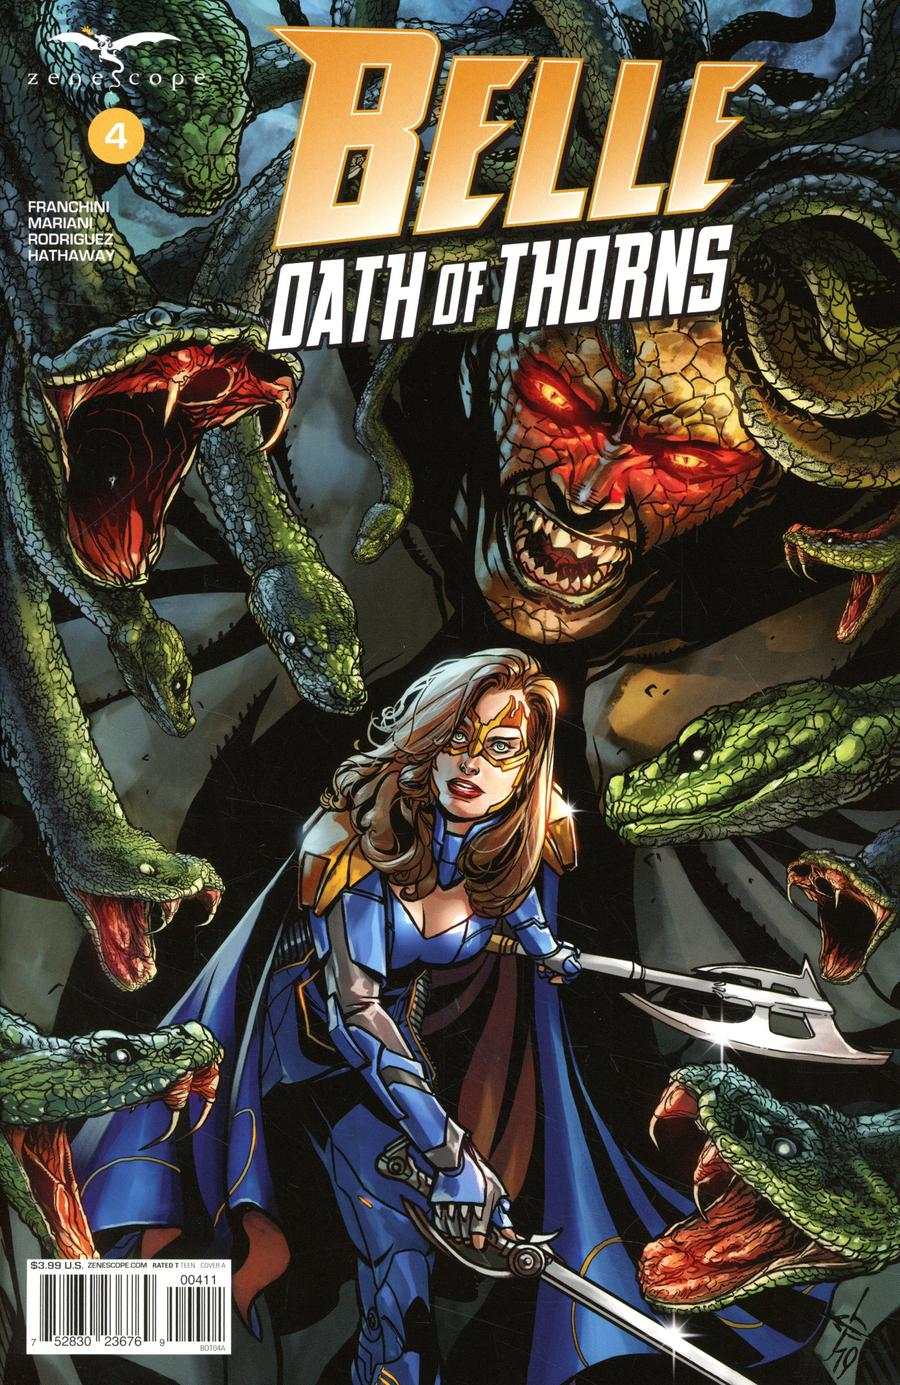 Grimm Fairy Tales Presents Belle Oath Of Thorns #4 Cover A Drew Edward Johnson